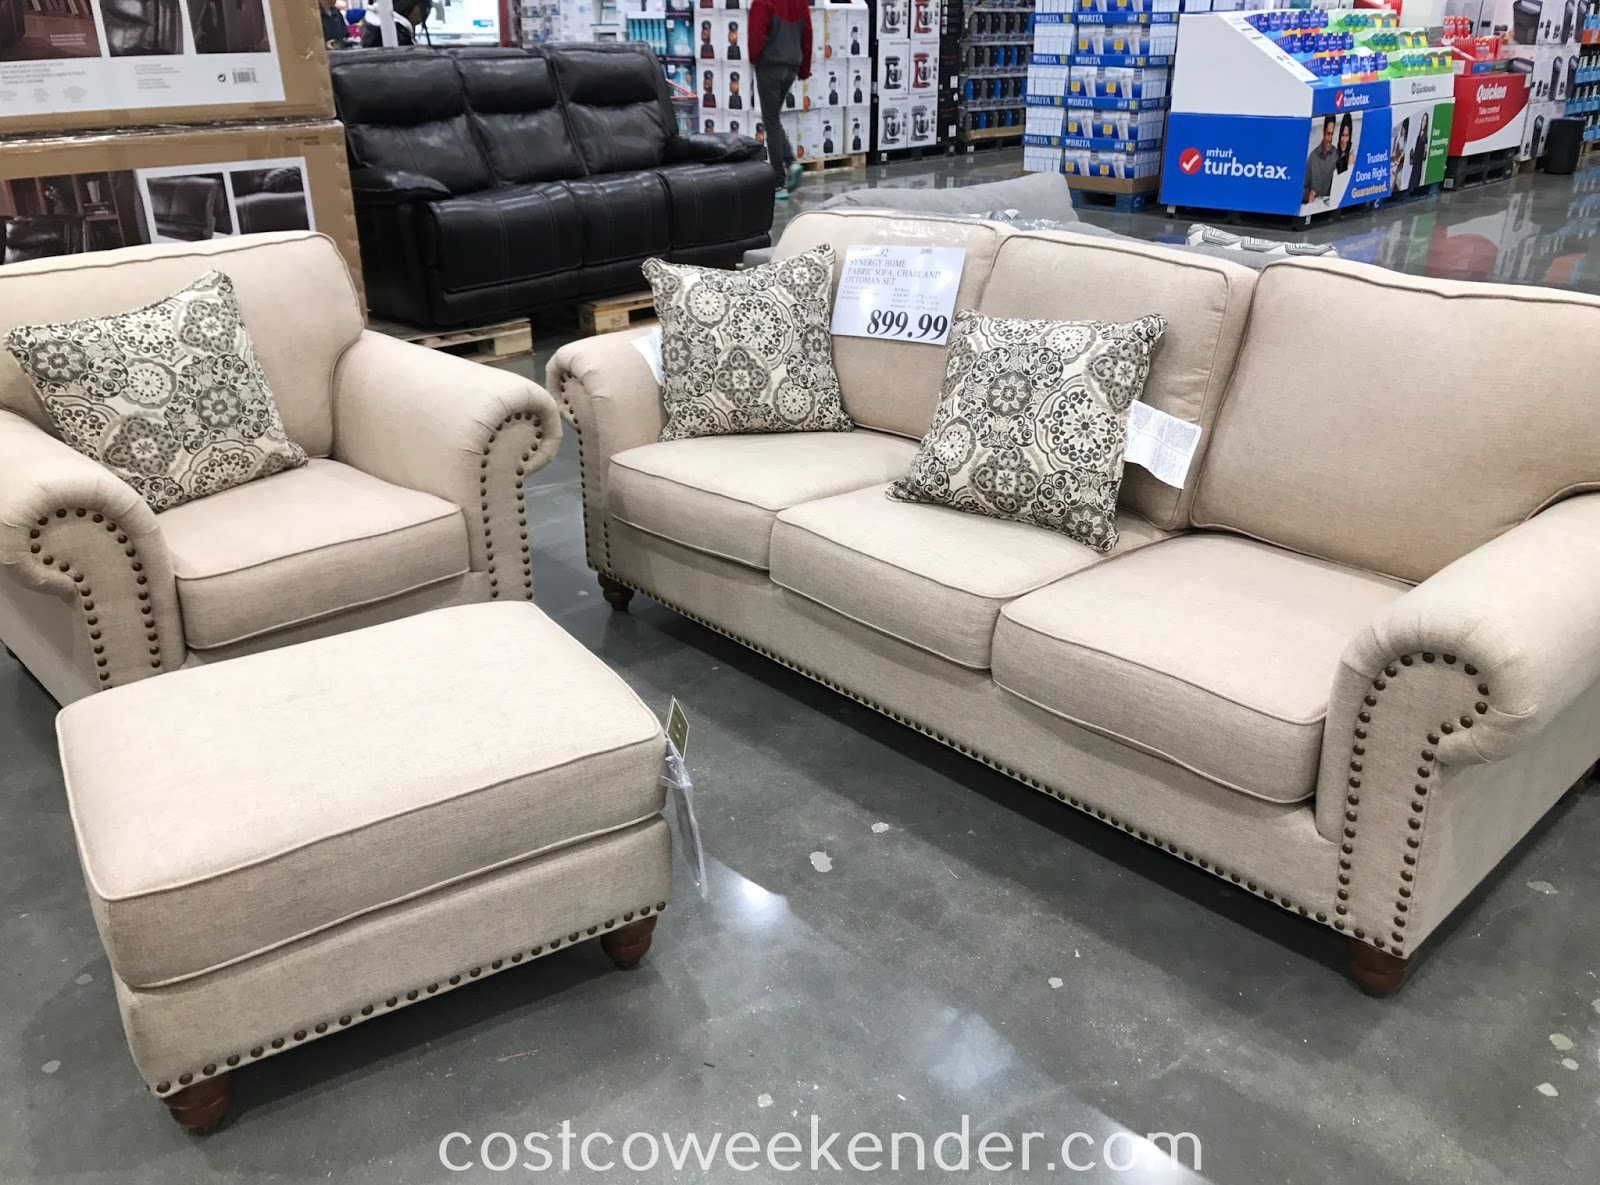 Relax in your home on the Synergy Home Fabric Sofa, Chair & Ottoman Set